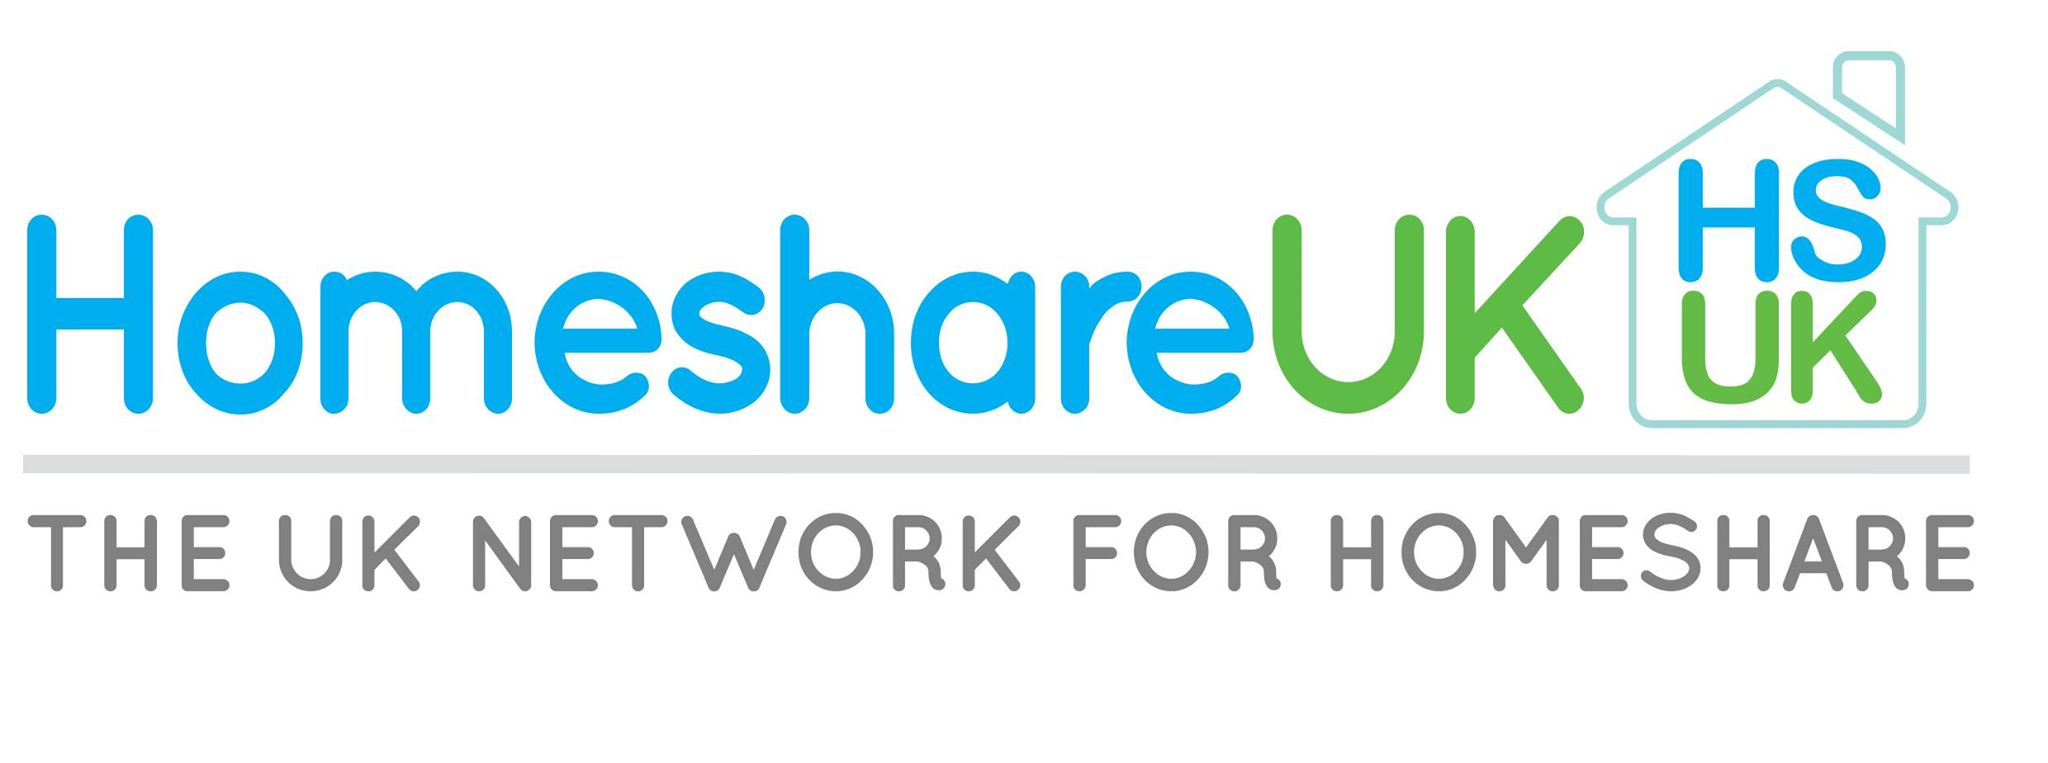 Homeshare UK Network Logo